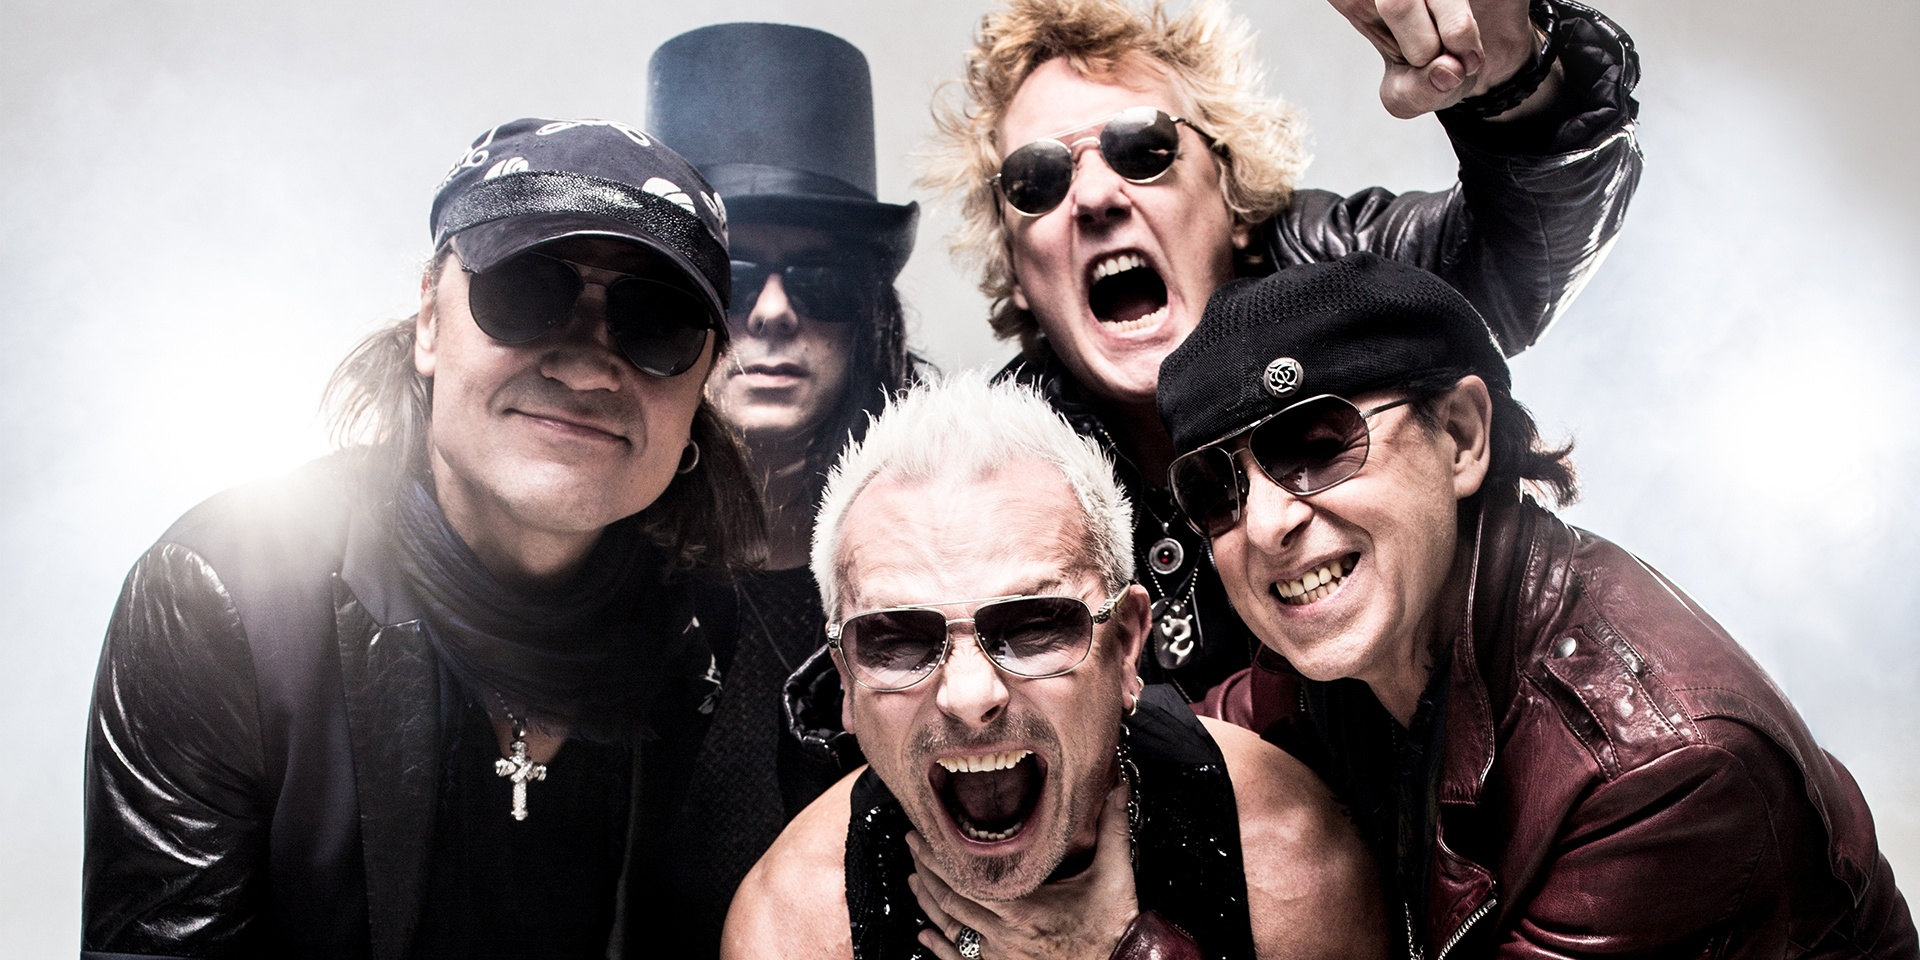 Hard rock legends Scorpions to perform in Singapore for 50th anniversary